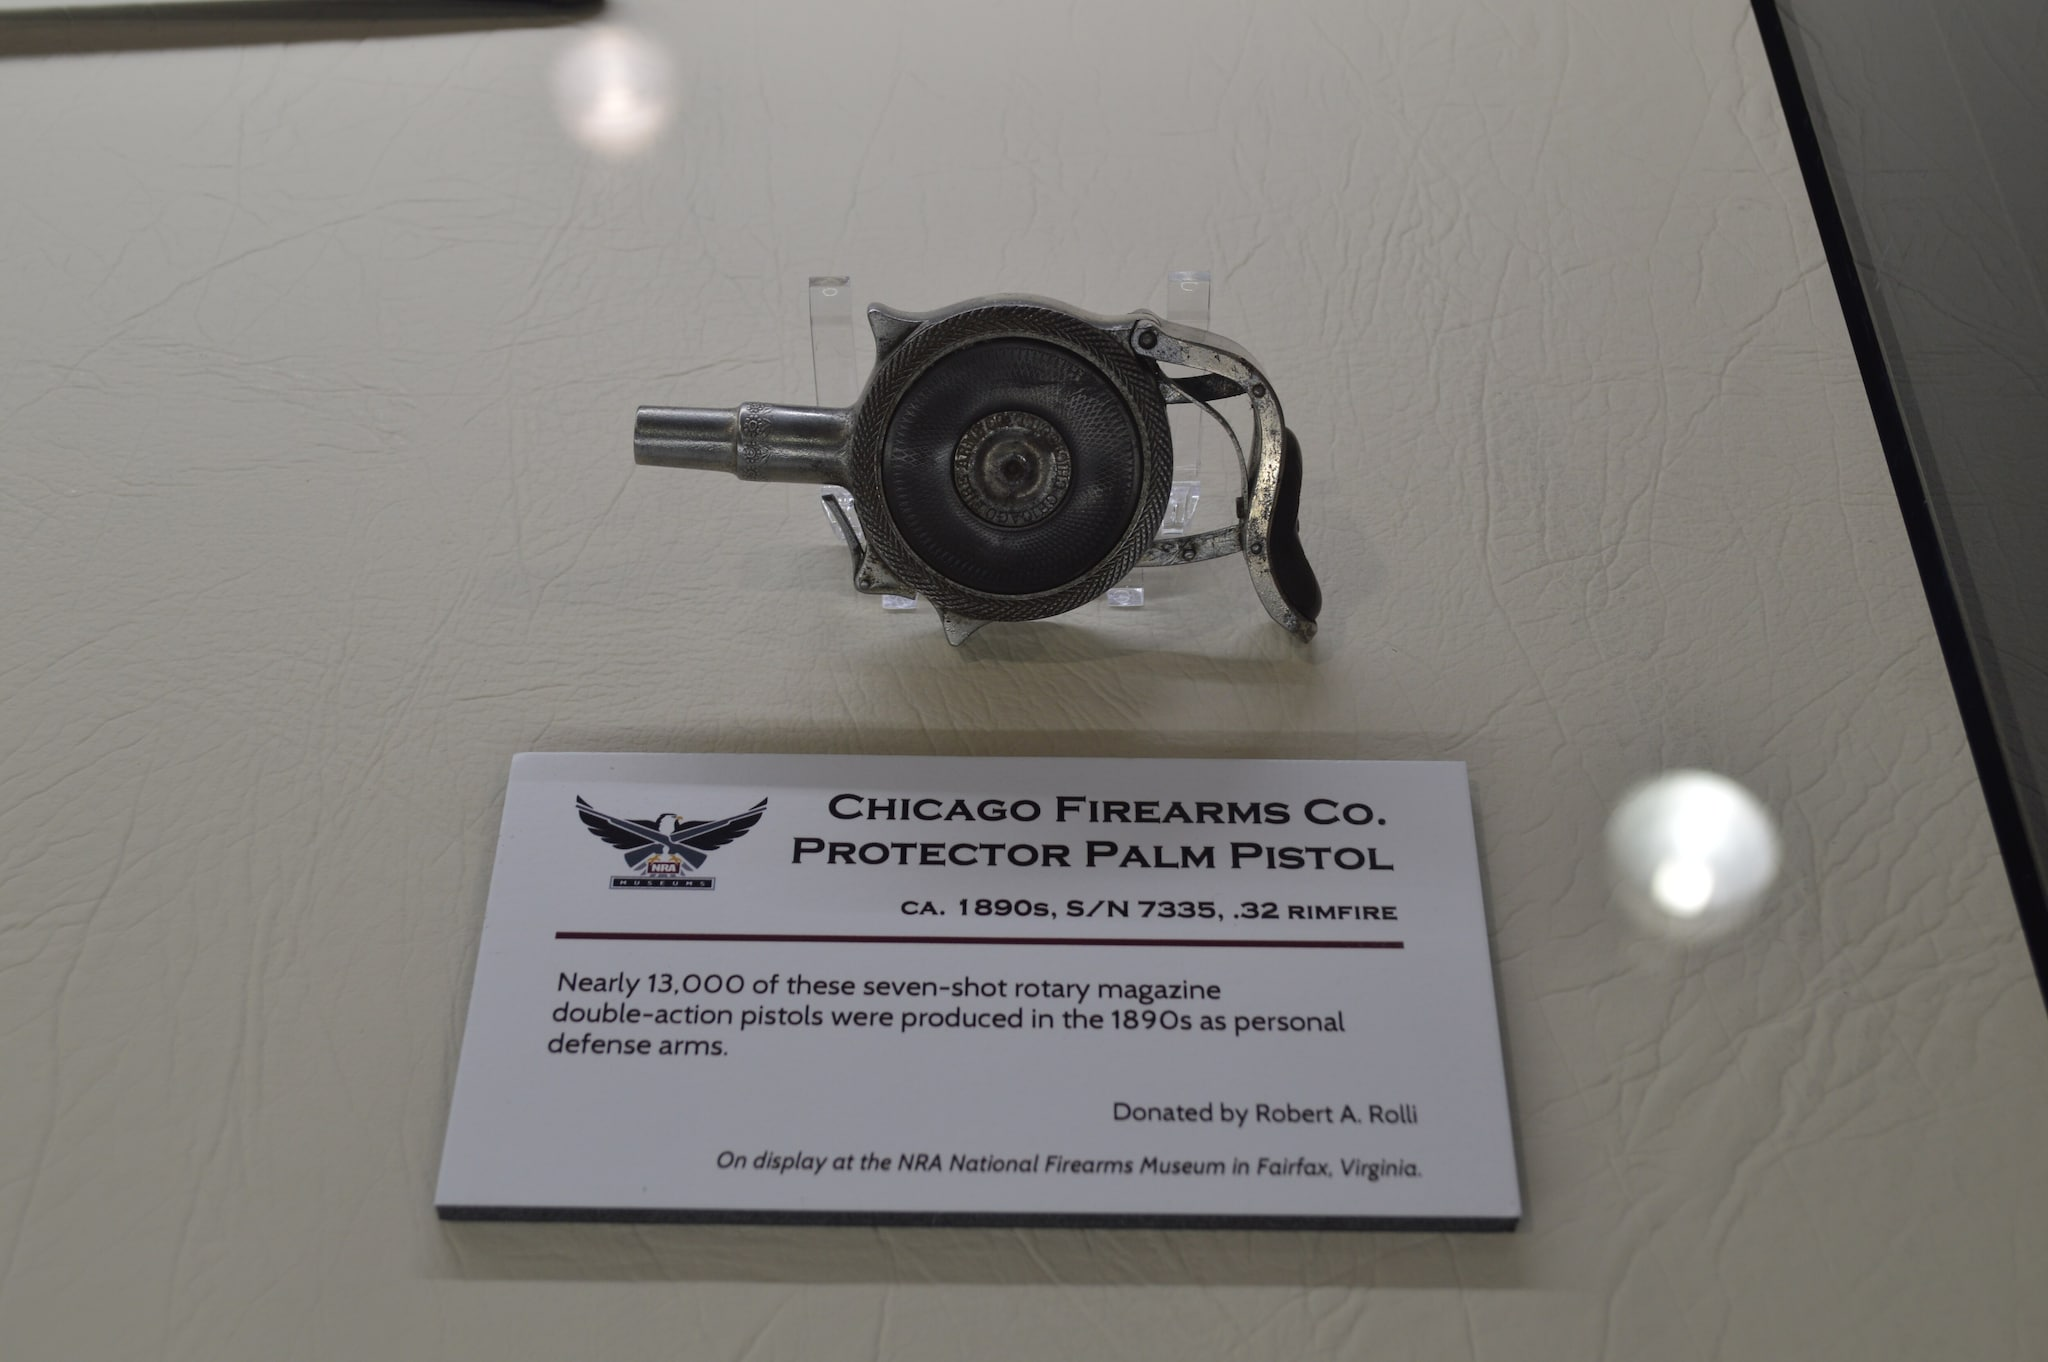 In a different era of concealed carry, this Palm Pistol was en vogue. This example is housed at the NRA Museum in Fairfax, VA. (Photo: Kristin Alberts/Guns.com)